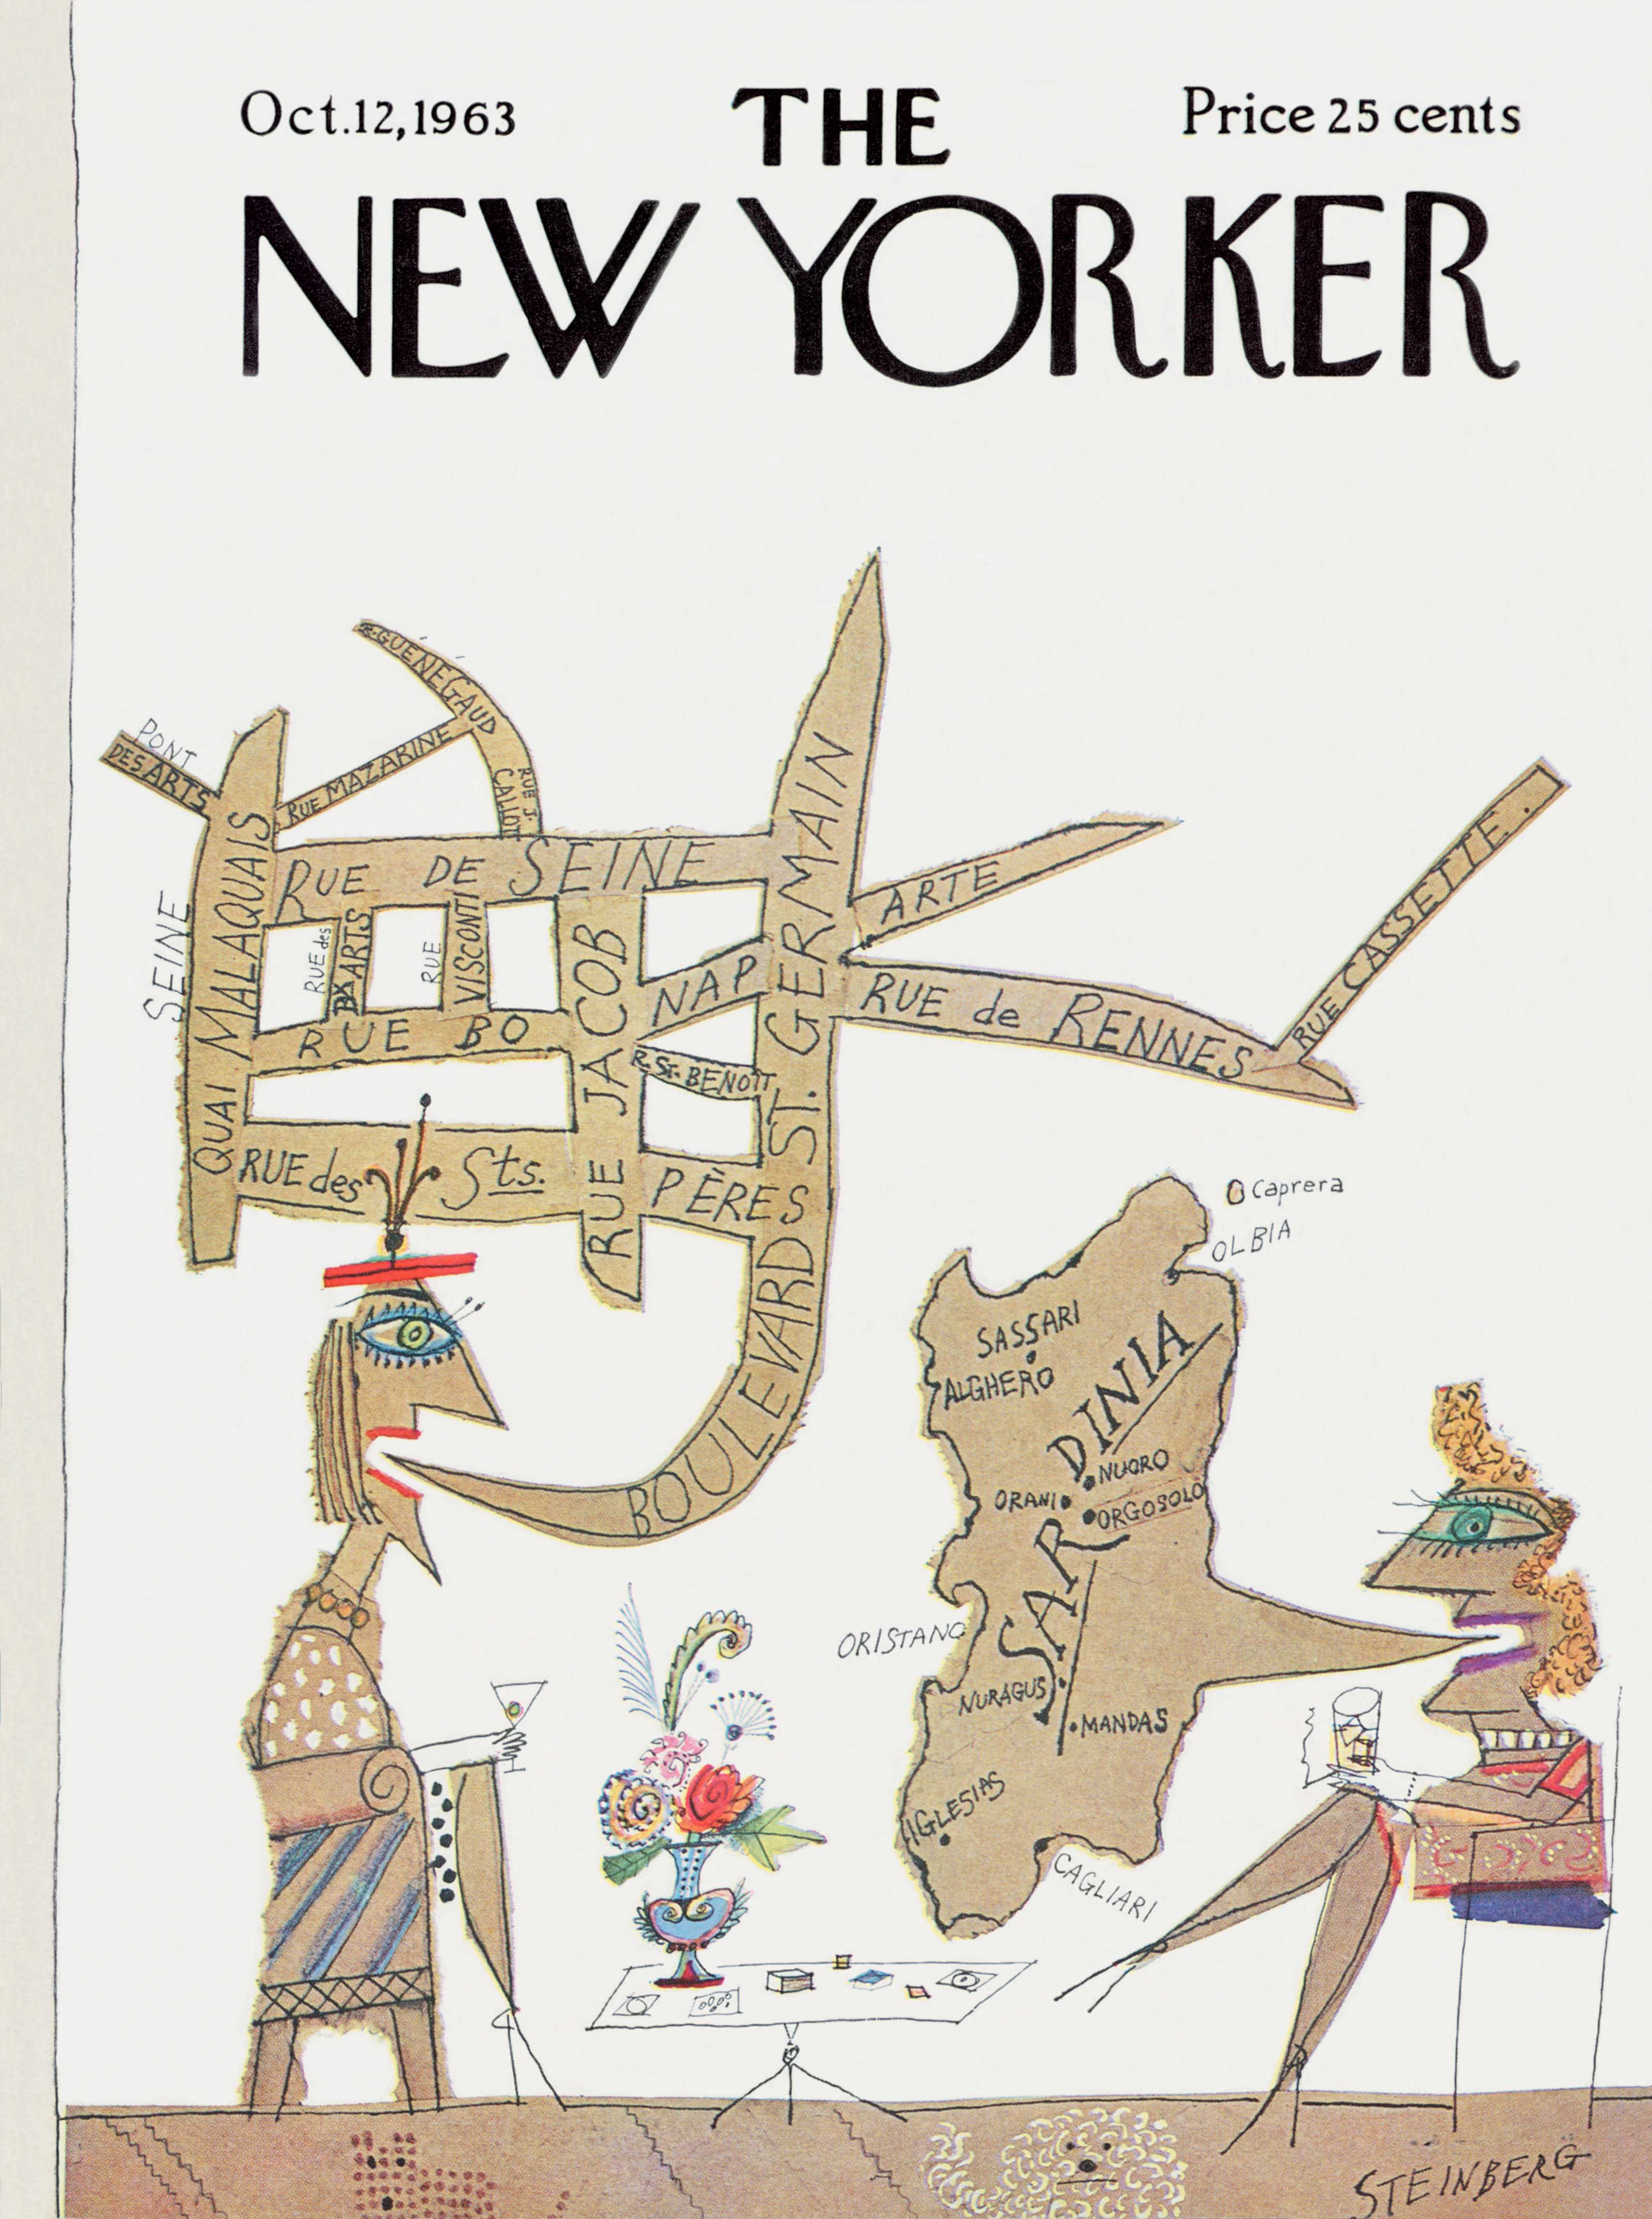 Saul Steinberg, Cover of The New Yorker, Oct 12, 1963 © The Saul Steinberg Foundation /Artists Rights Society (ARS), New York Cover reprinted with permission of The New Yorker magazine. All rights reserved.